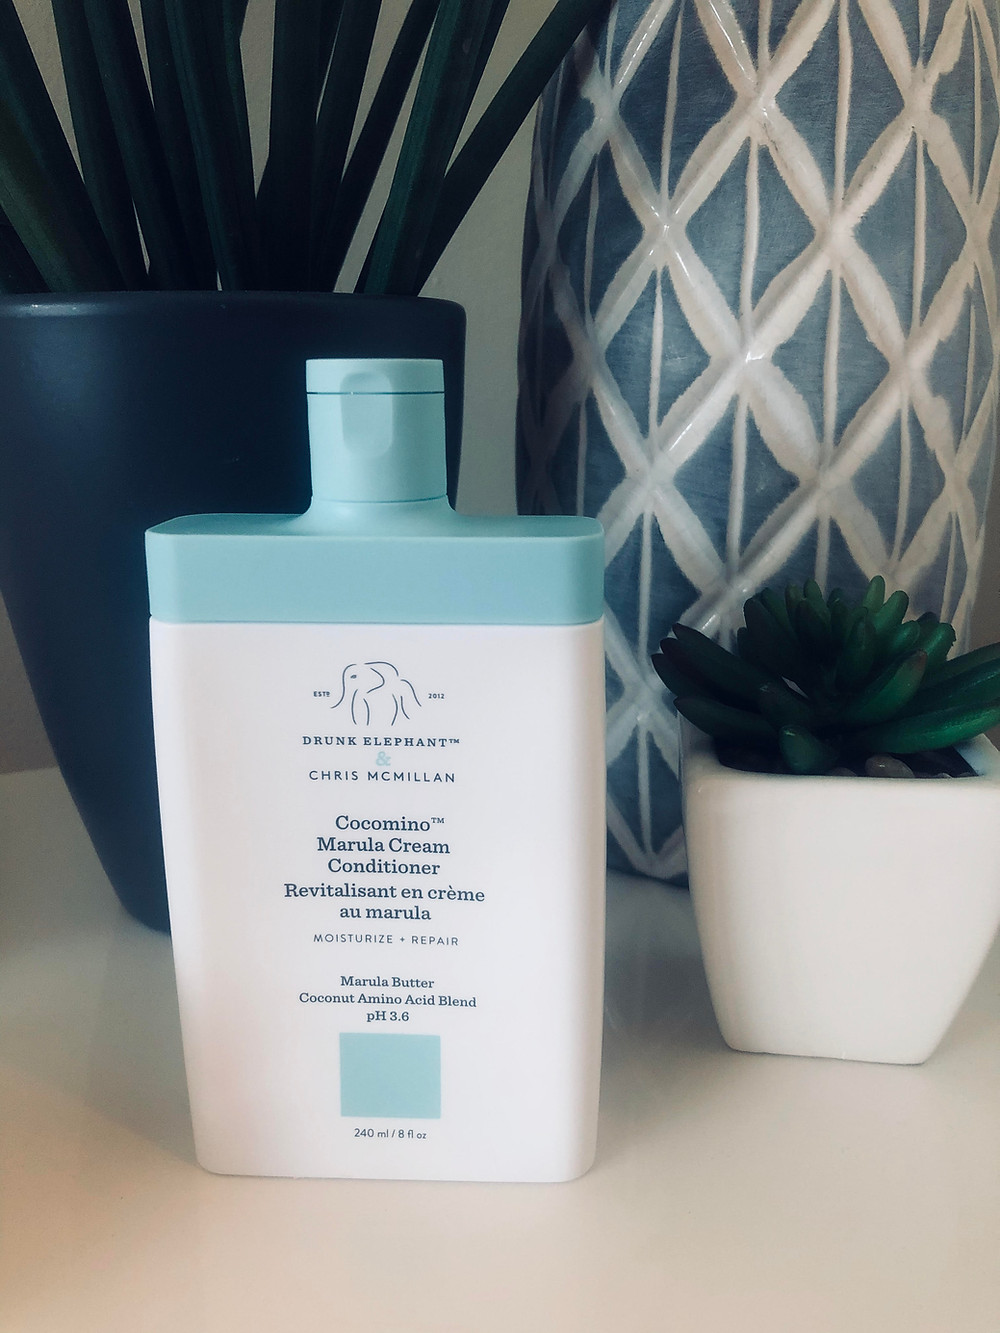 honest review of drunk elephant cocomino marula cream conditioner on table